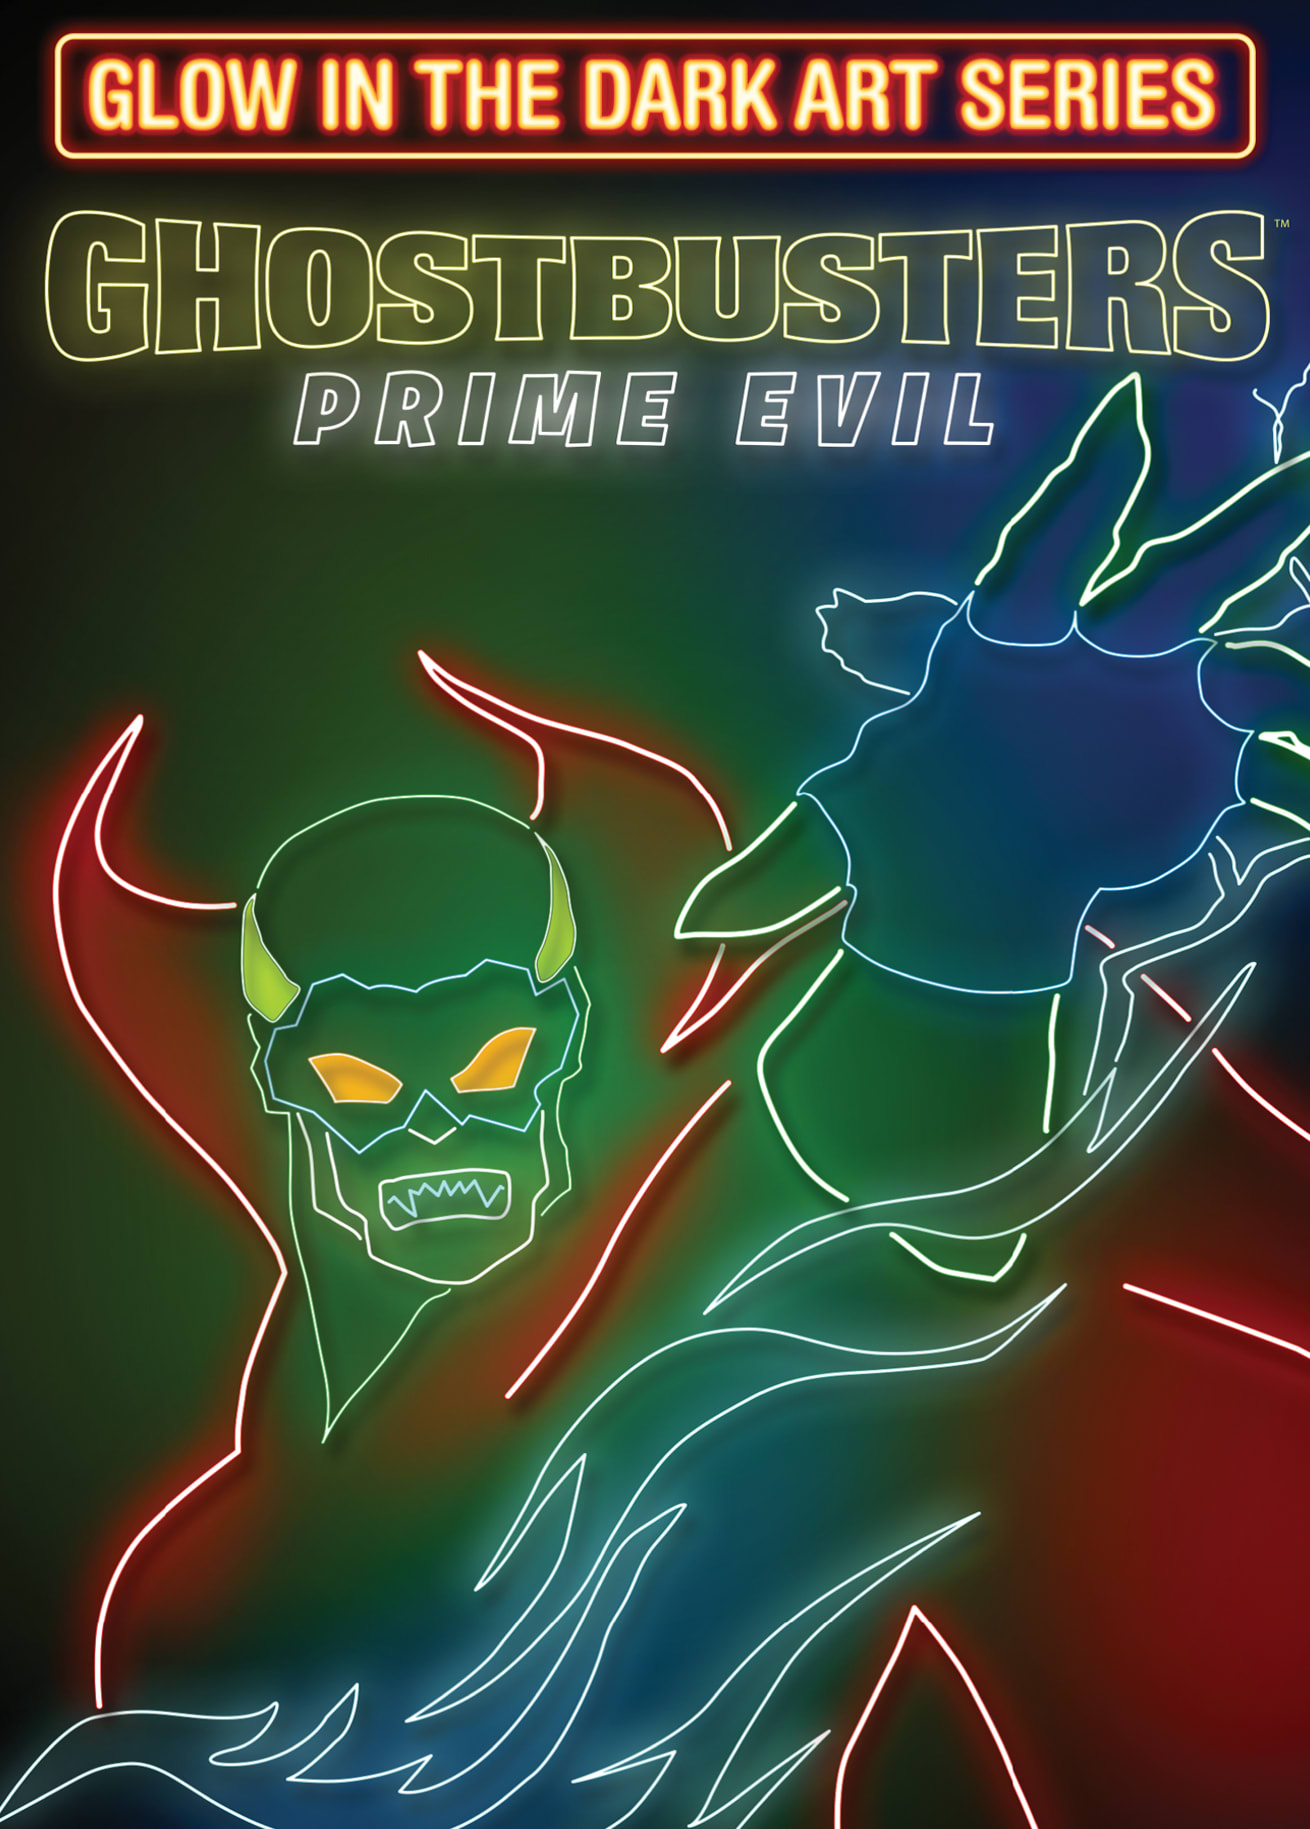 Ghostbusters: Prime Evil (Glow In The Dark Art Series) [DVD]